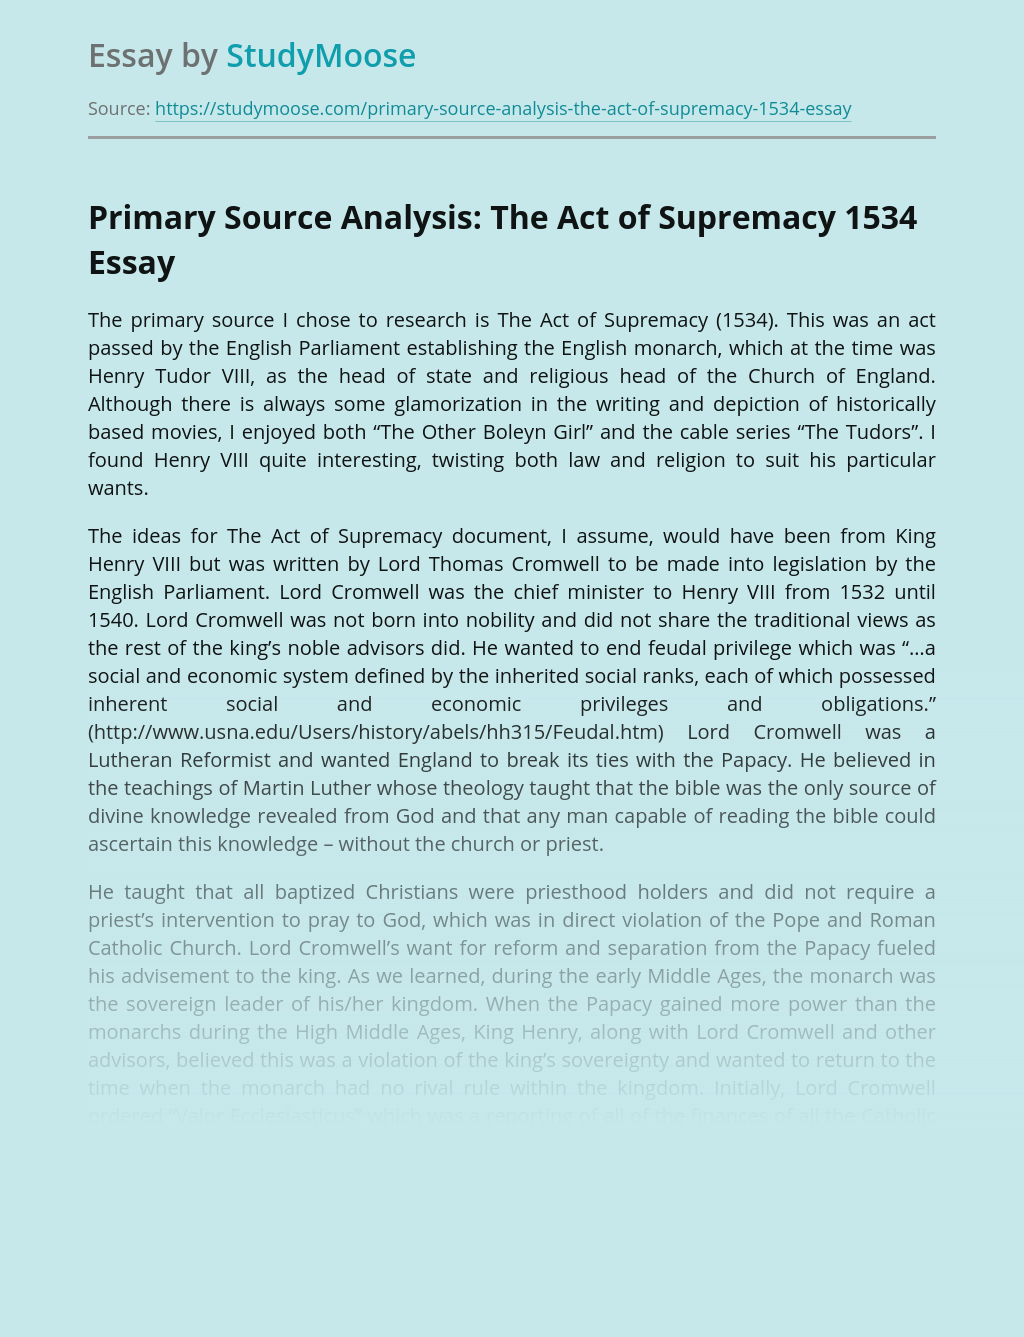 The Act of Supremacy 1534